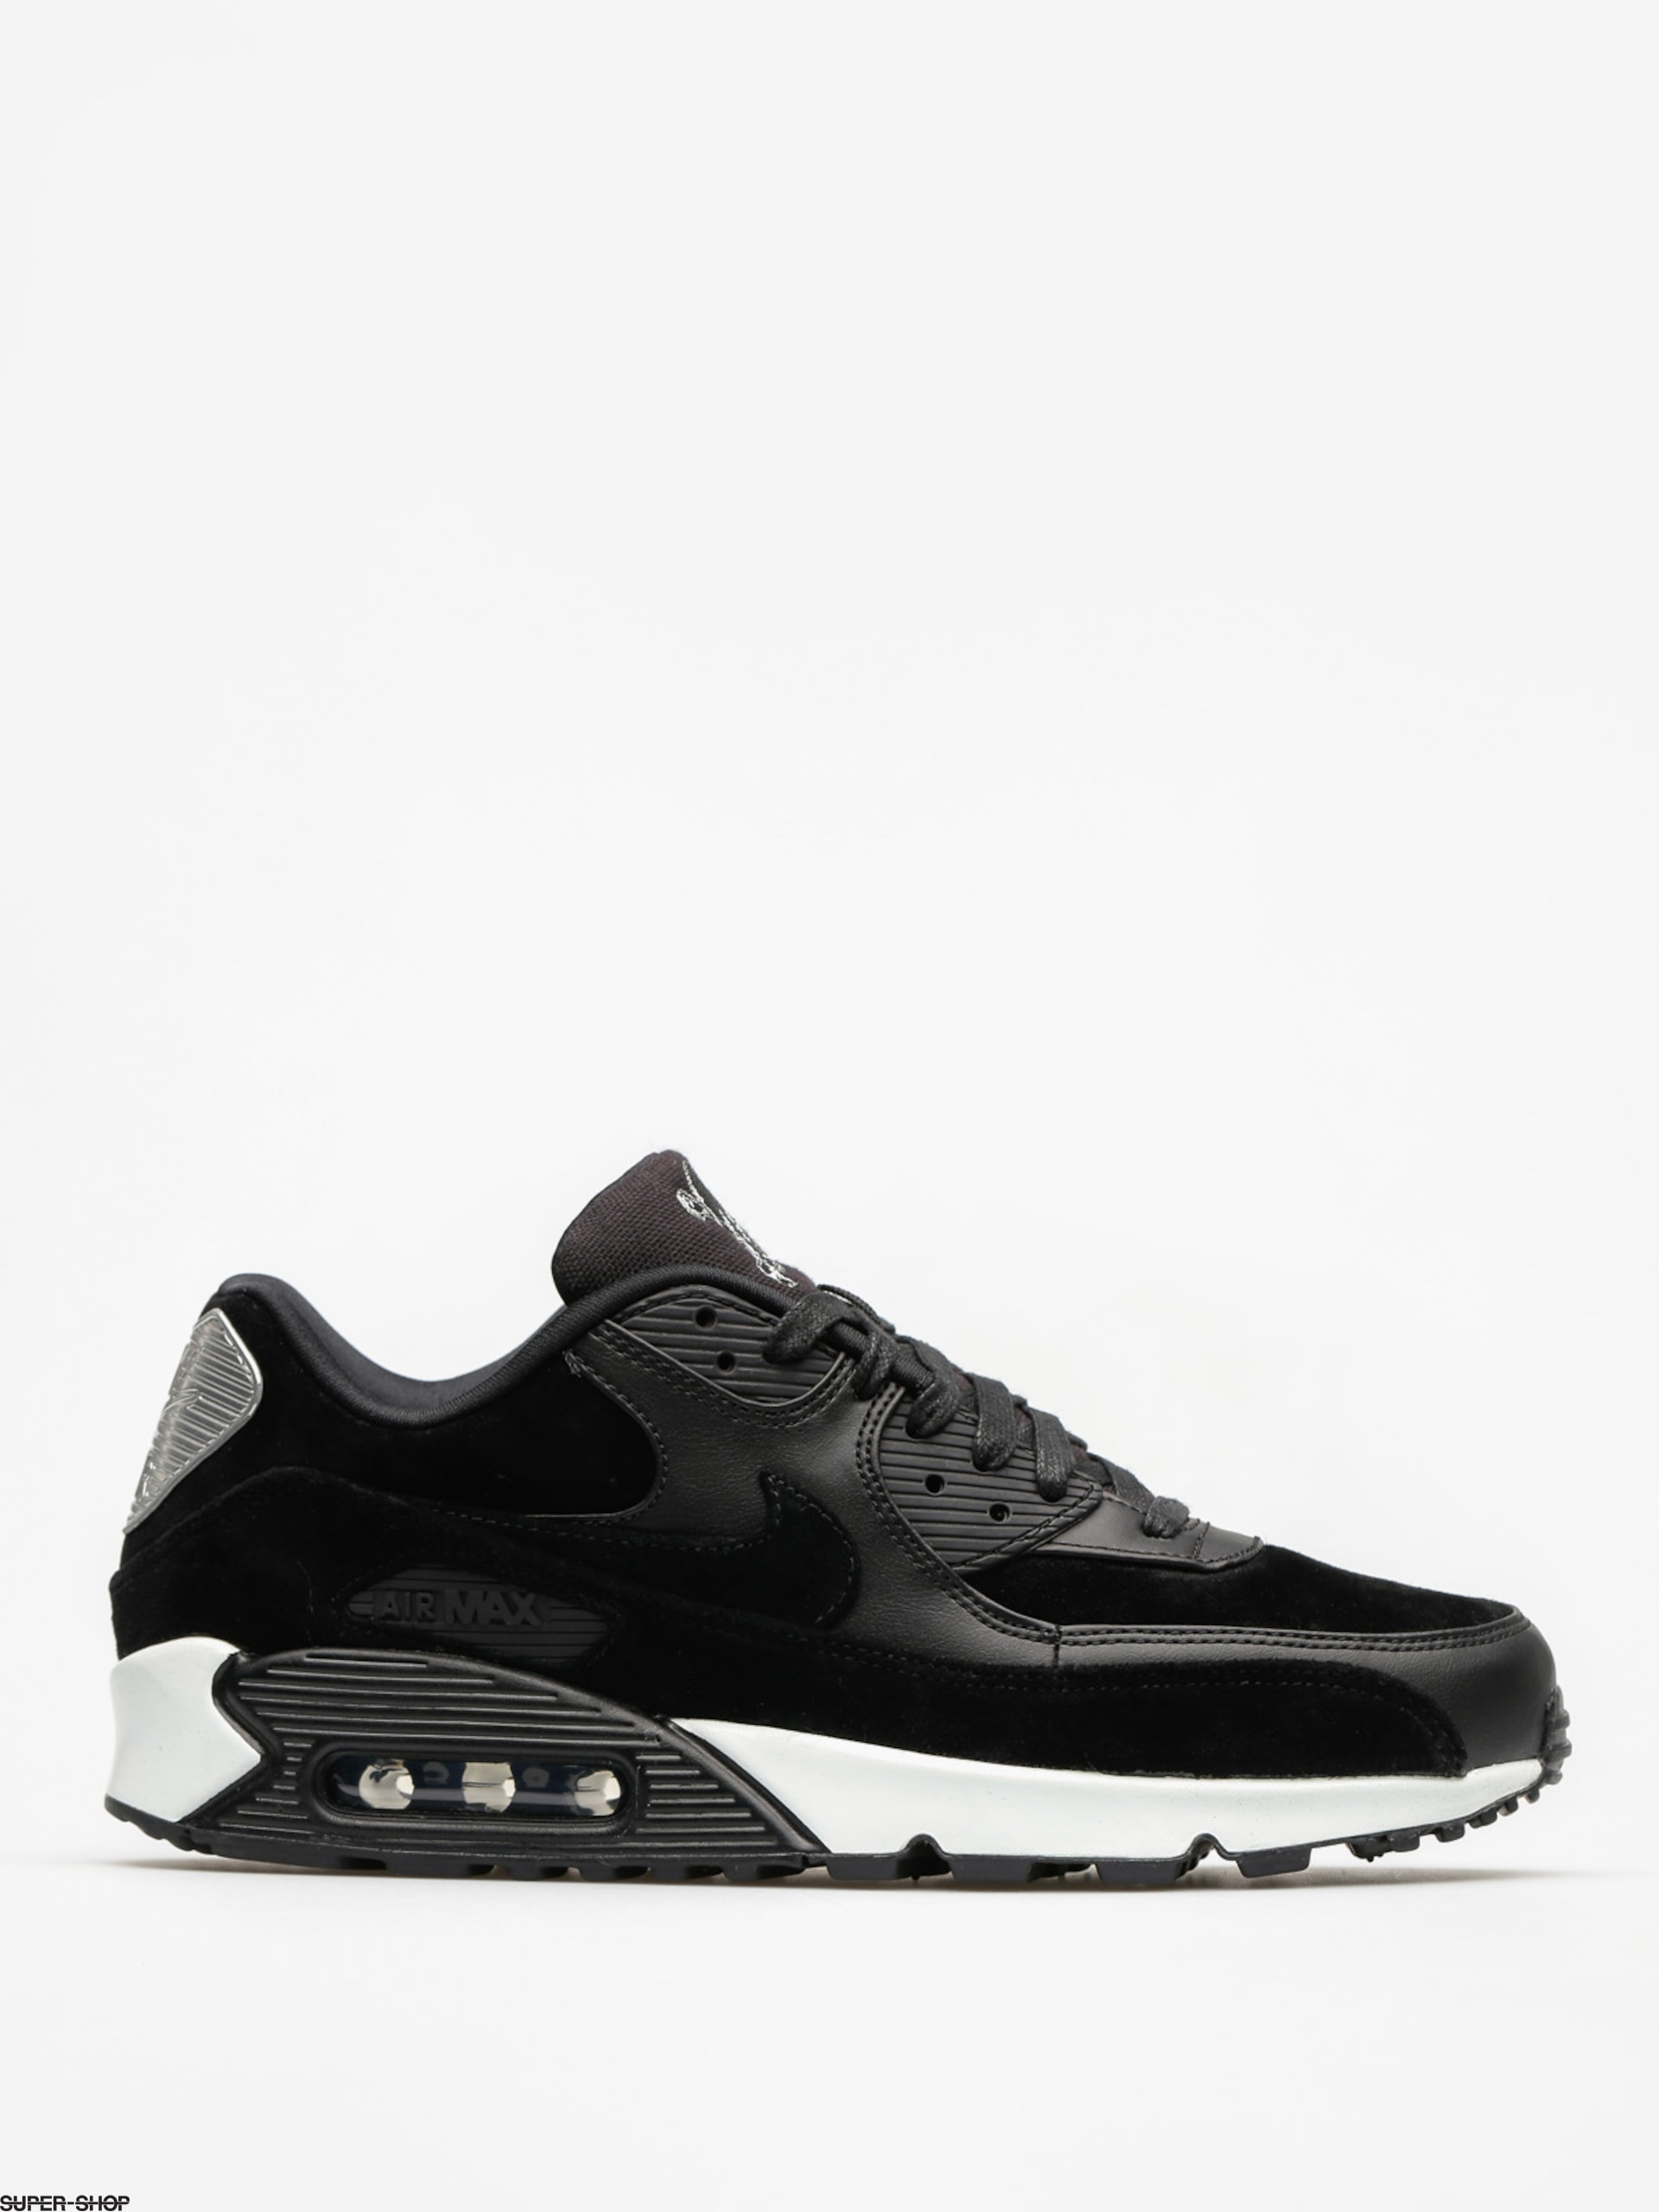 Nike Schuhe Air Max 90 Premium (black/black off white)